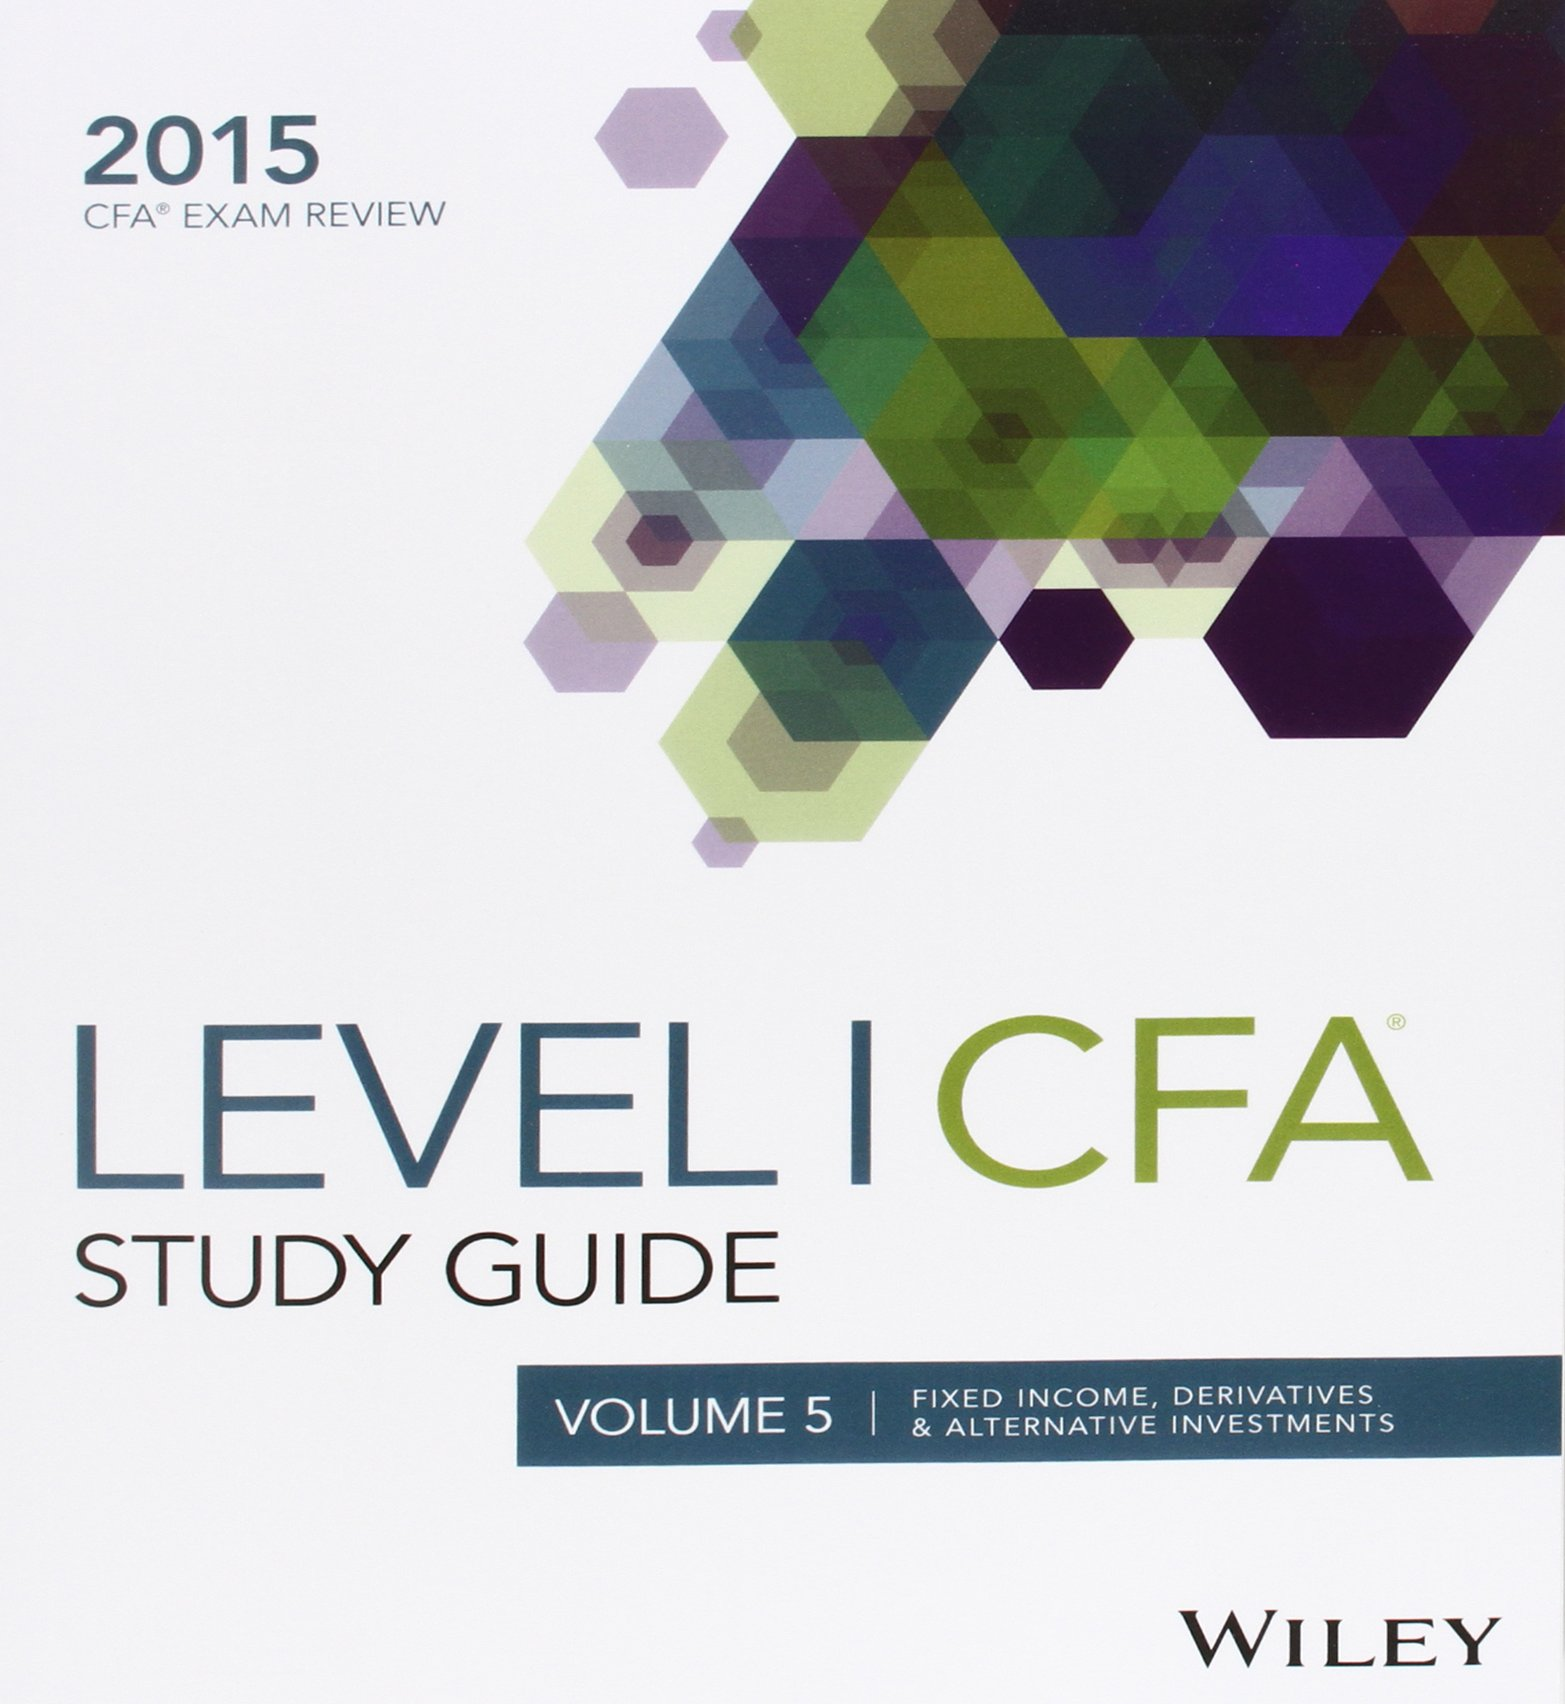 Buy Wiley Study Guide for 2015 Level I CFA Exam: Complete Set Book Online  at Low Prices in India | Wiley Study Guide for 2015 Level I CFA Exam:  Complete Set ...